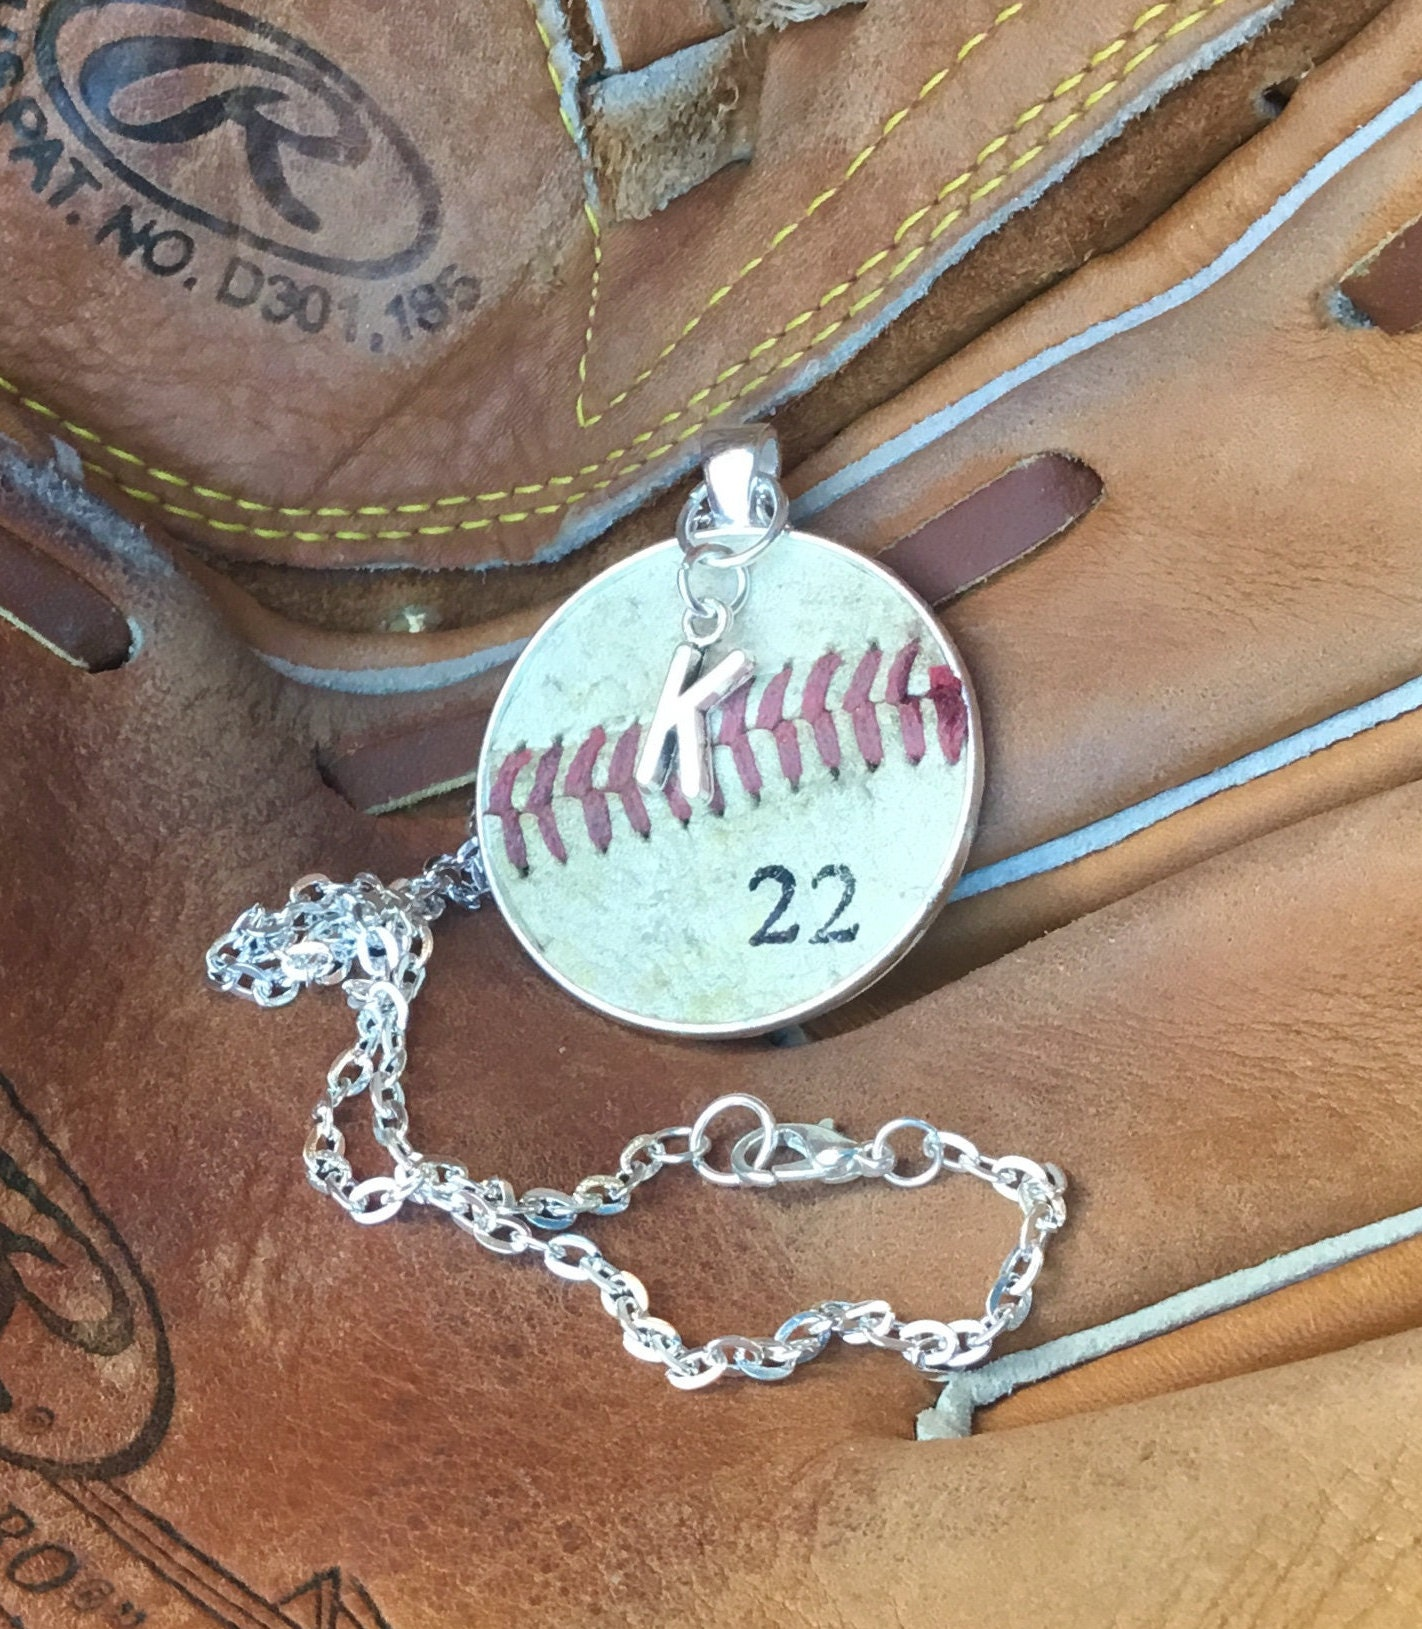 dp sterling com sports softball jewelry baseball silver pendant charm amazon